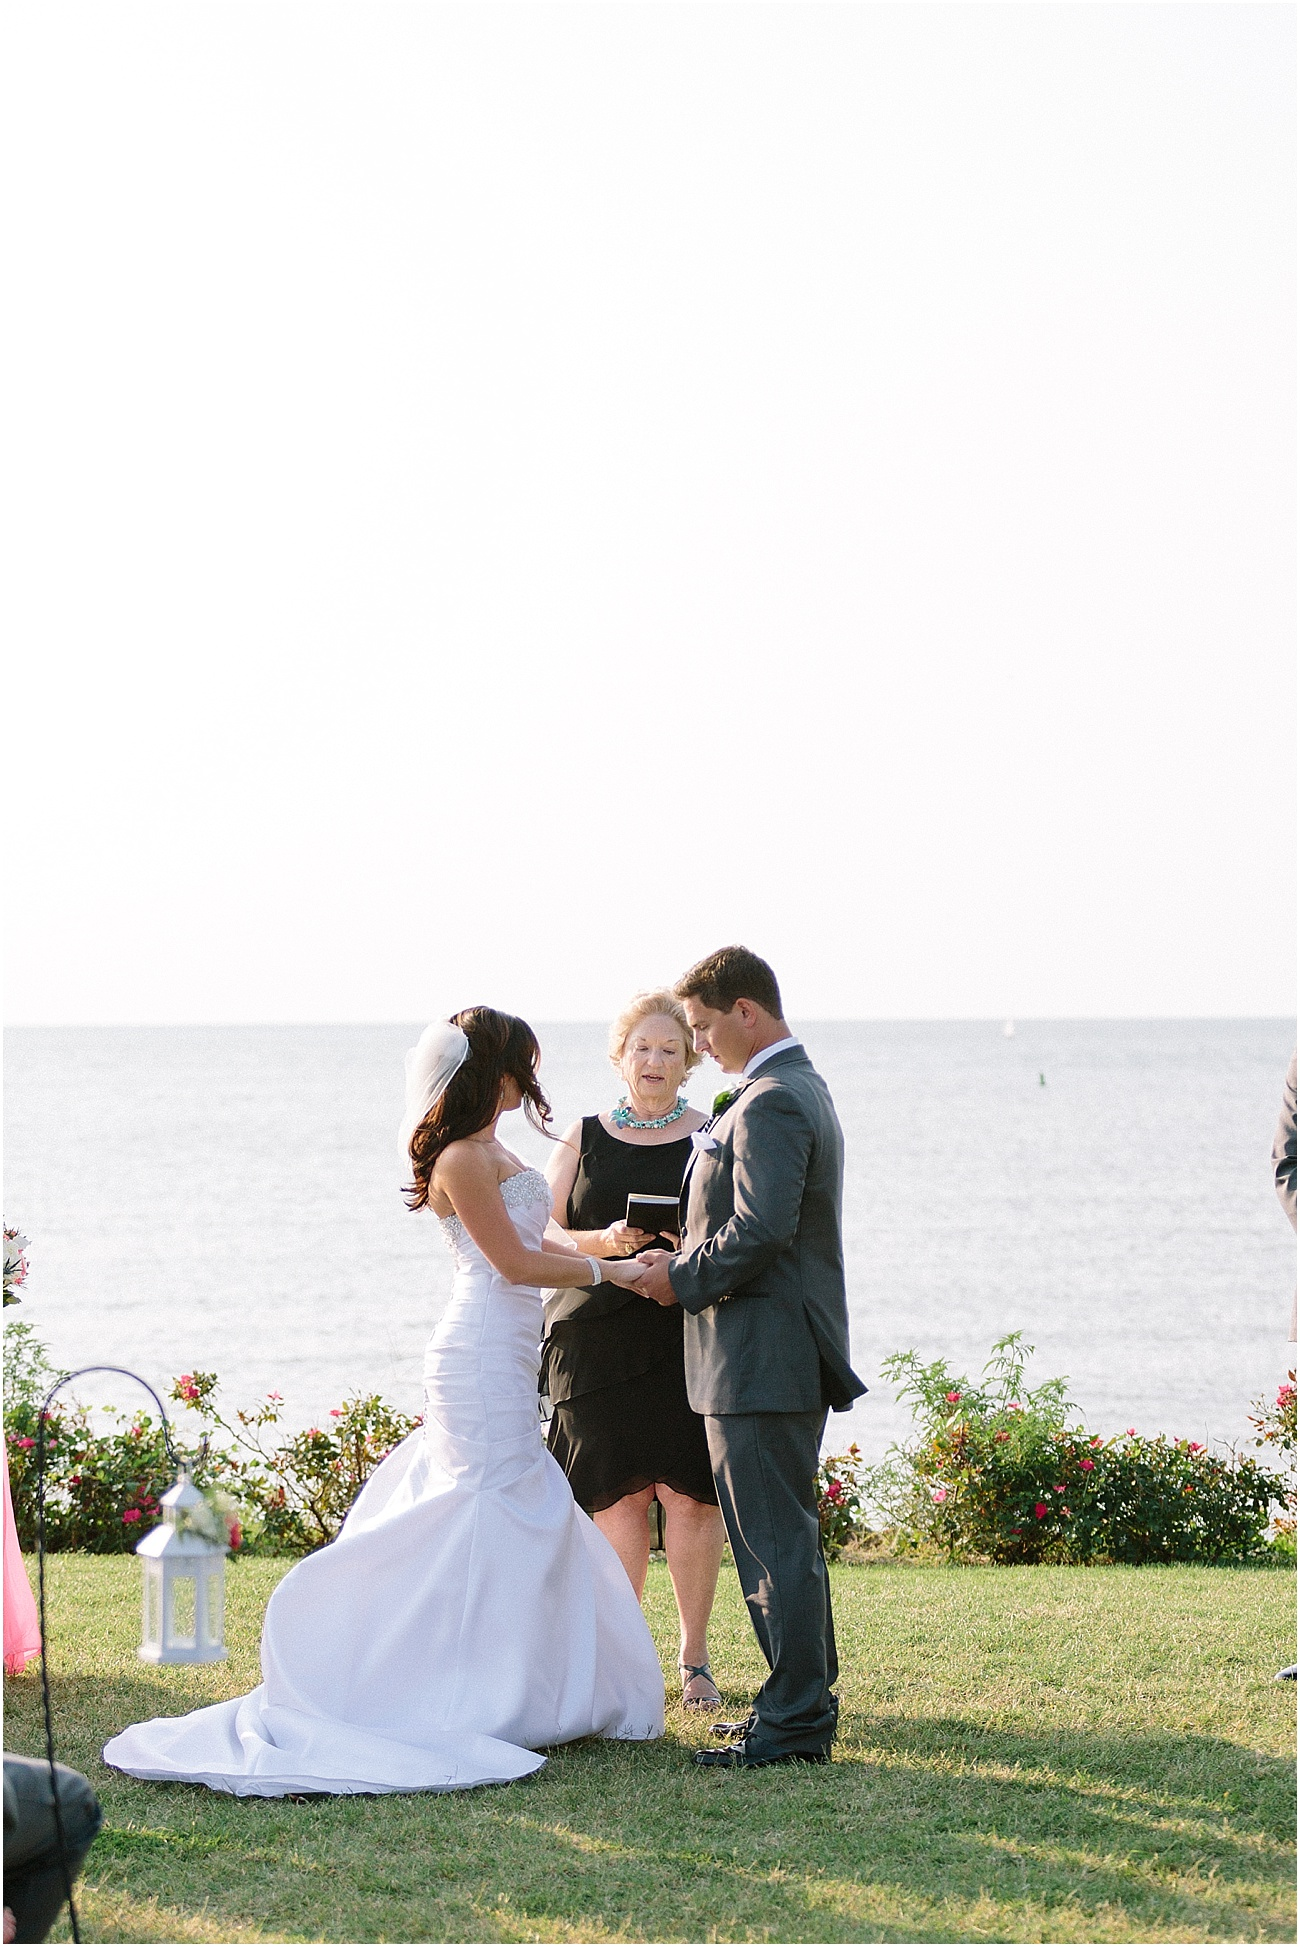 Aqua_Kings_Creek_Marina_Cape_Charles_Viginia_Wedding_Photographer_0060